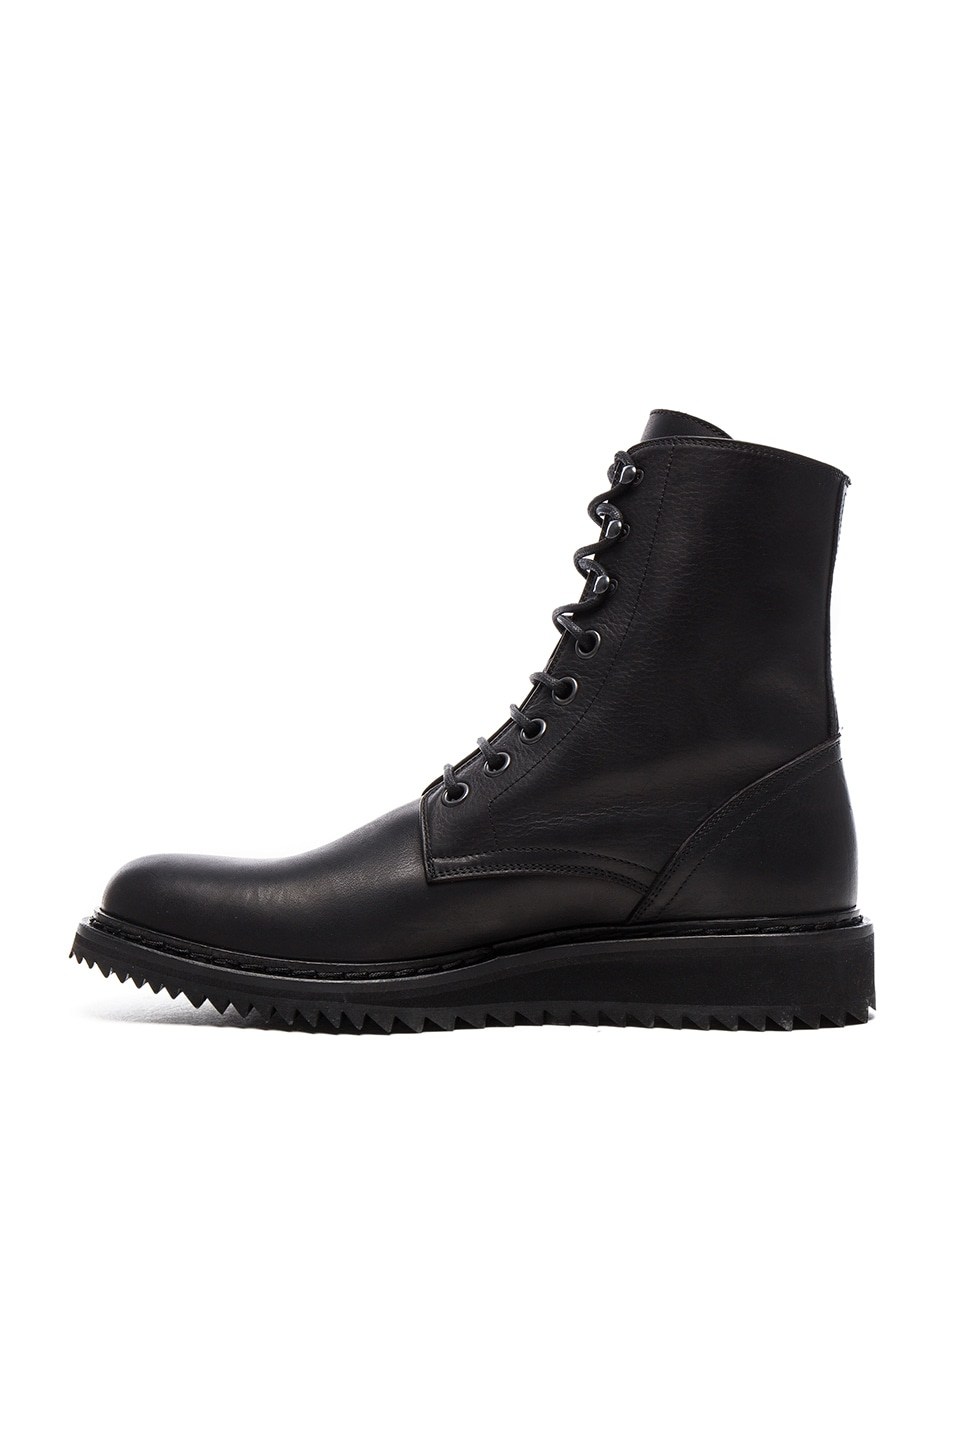 Ann Demeulemeester Leather Combat Booties cheap sale visit new authentic online free shipping get to buy 7j3S3